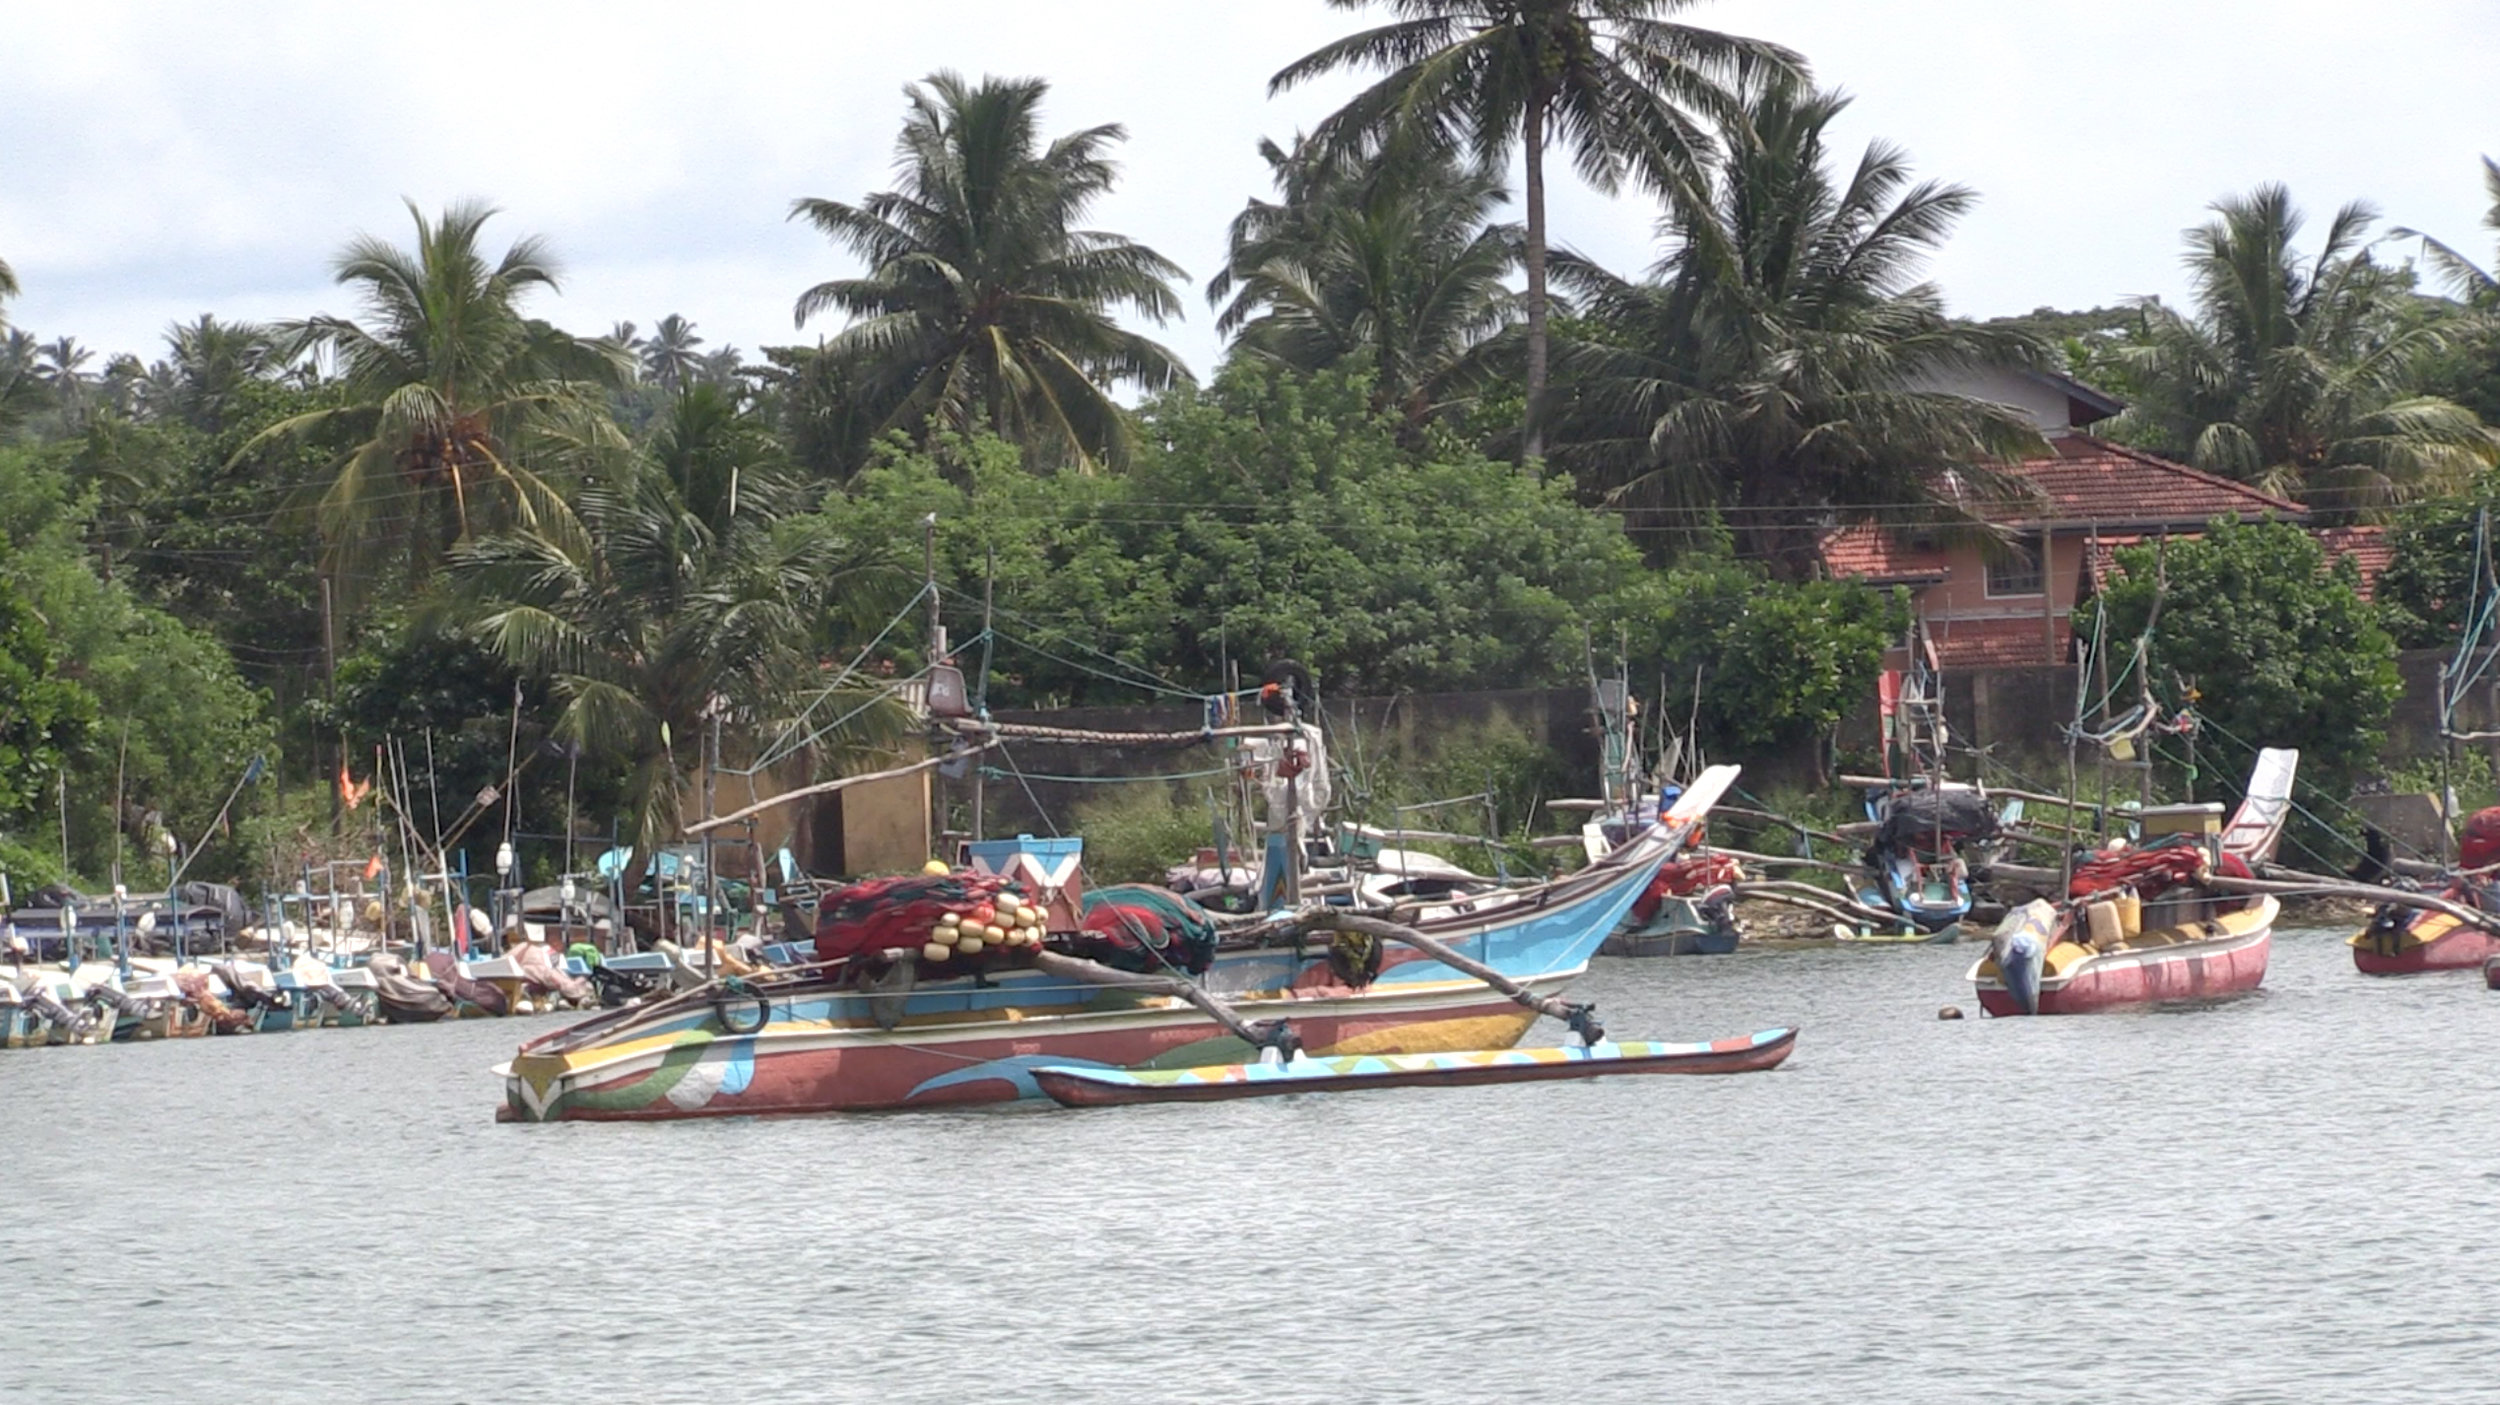 Fishing boats in the local harbour